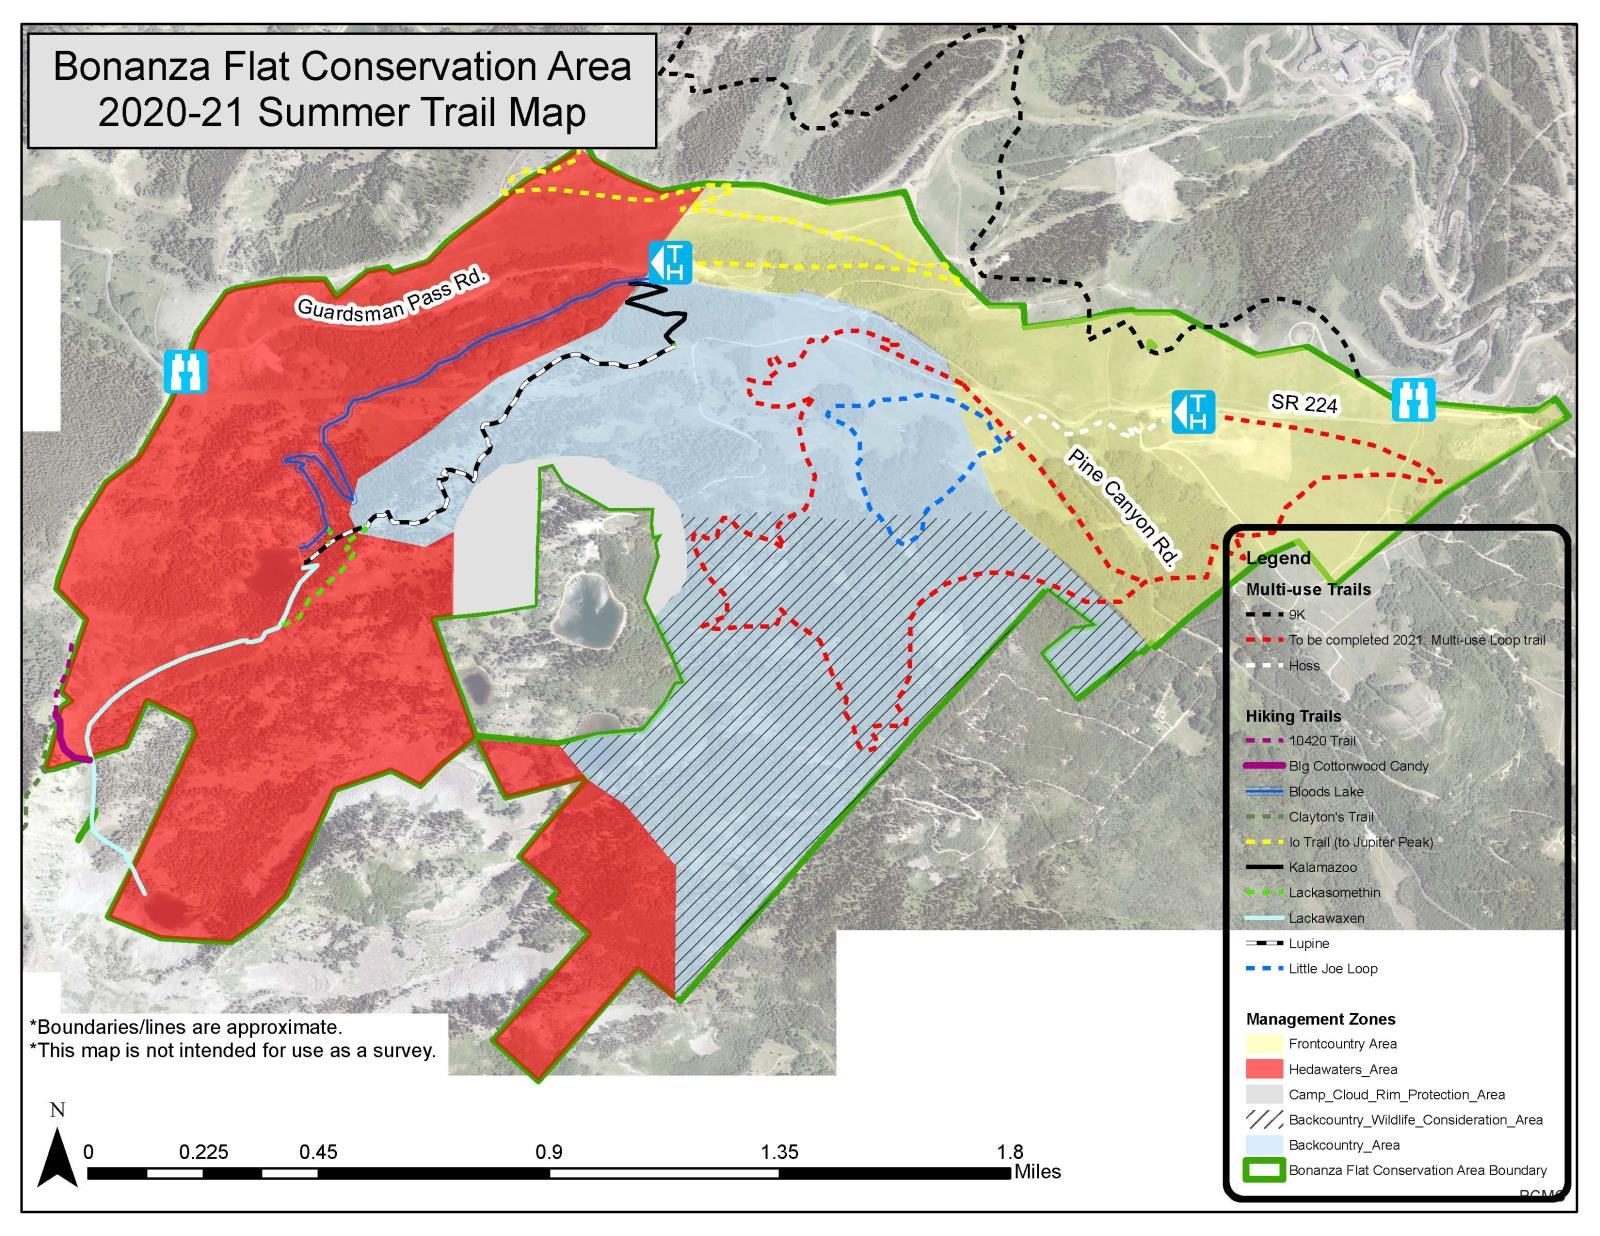 Bonanza Flat Conservation Area: Summer Trail Map 2020-21